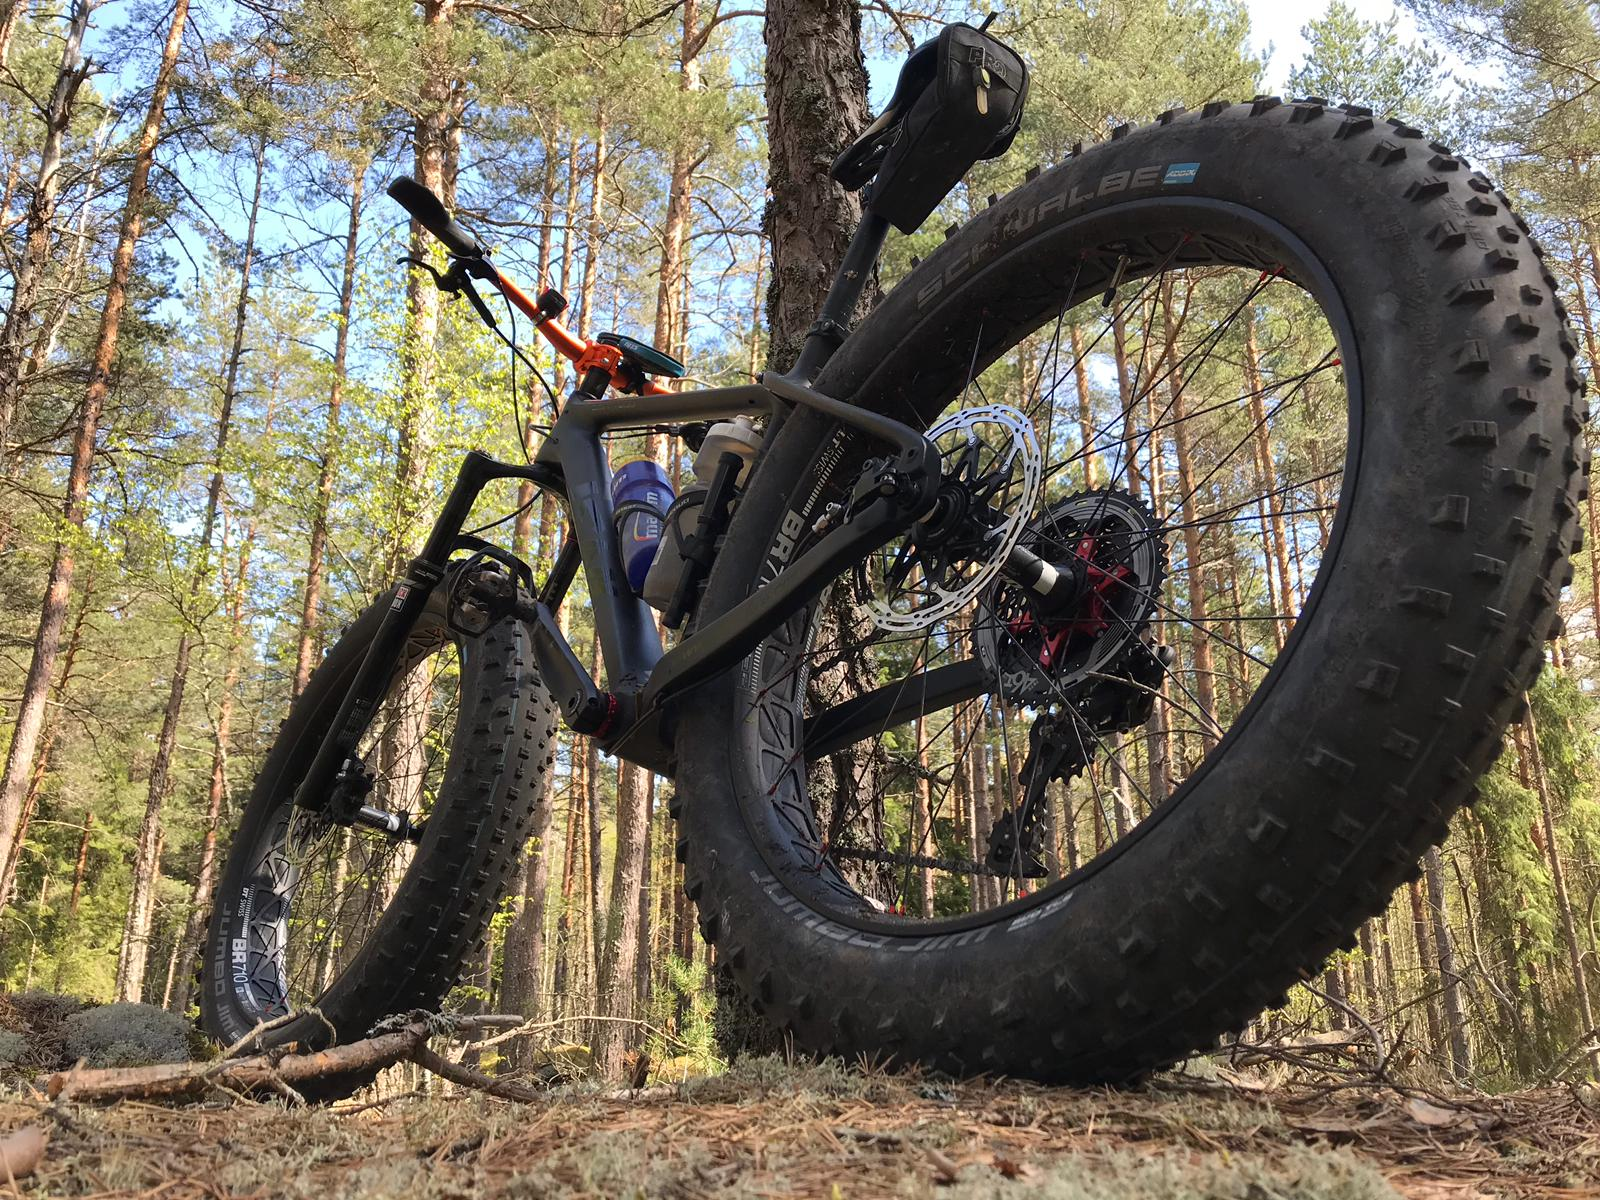 icancycling sn01 carbon fatbike